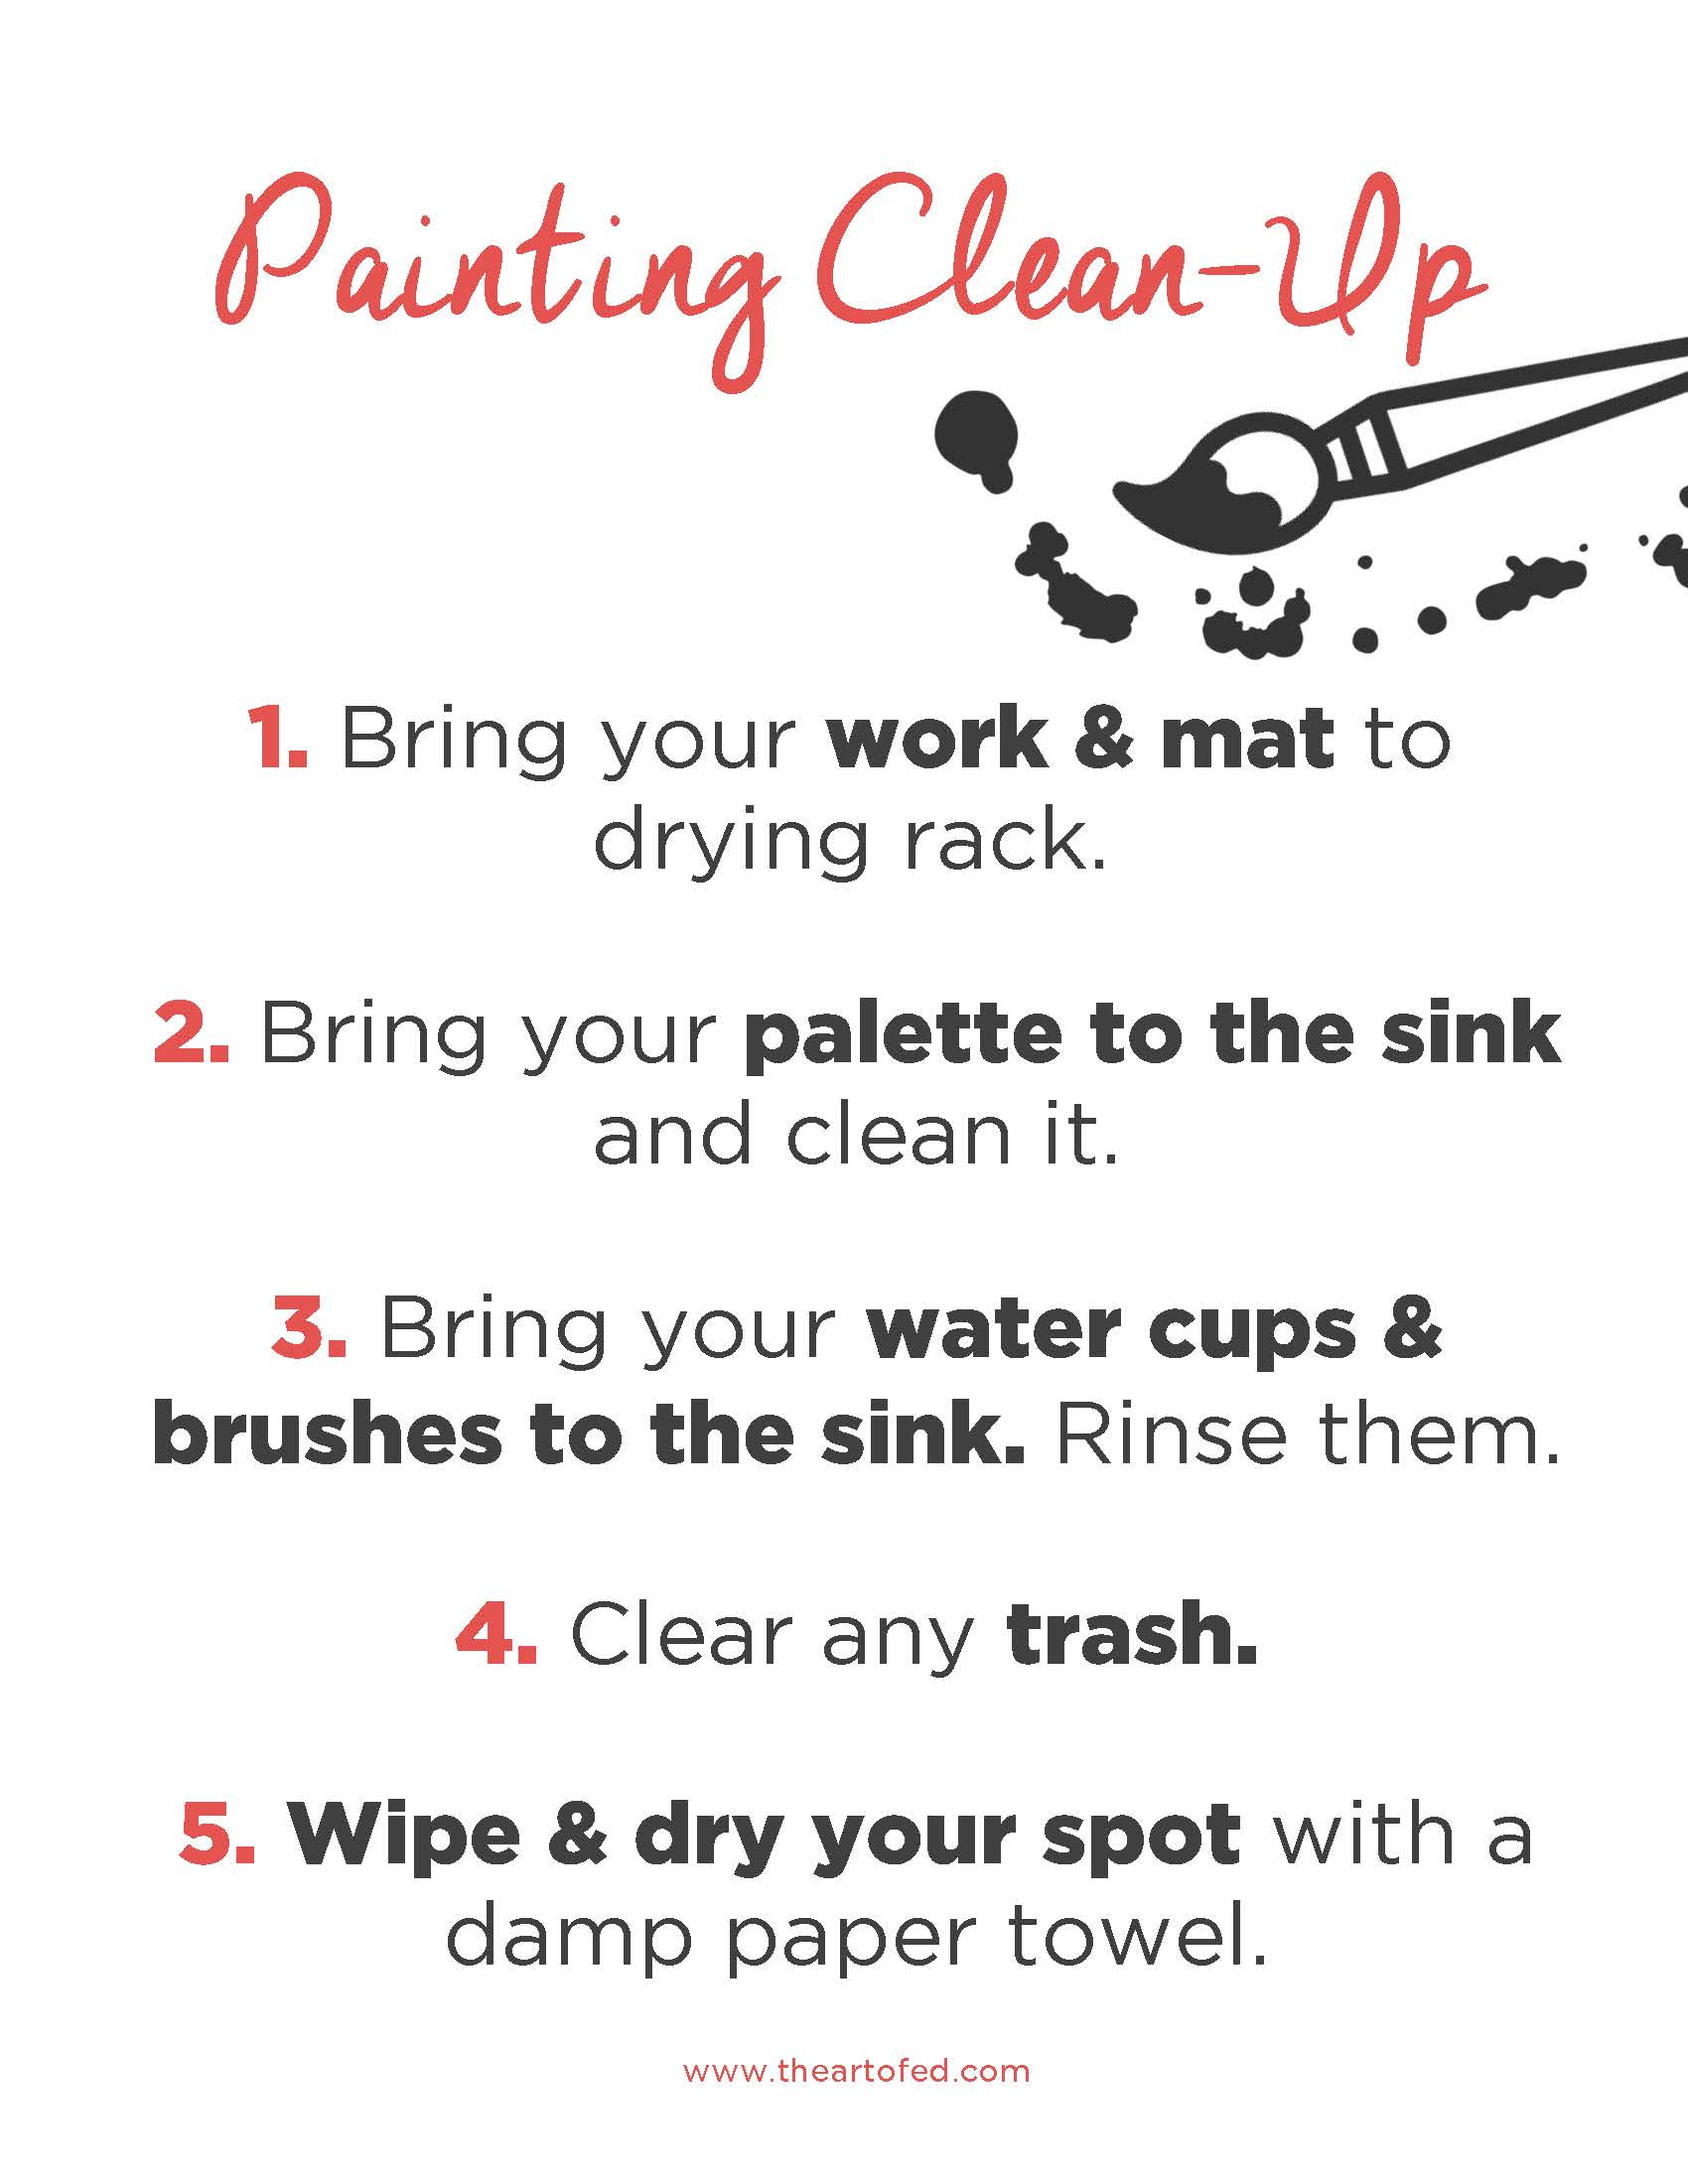 Painting-Clean-Up-1-1.jpg